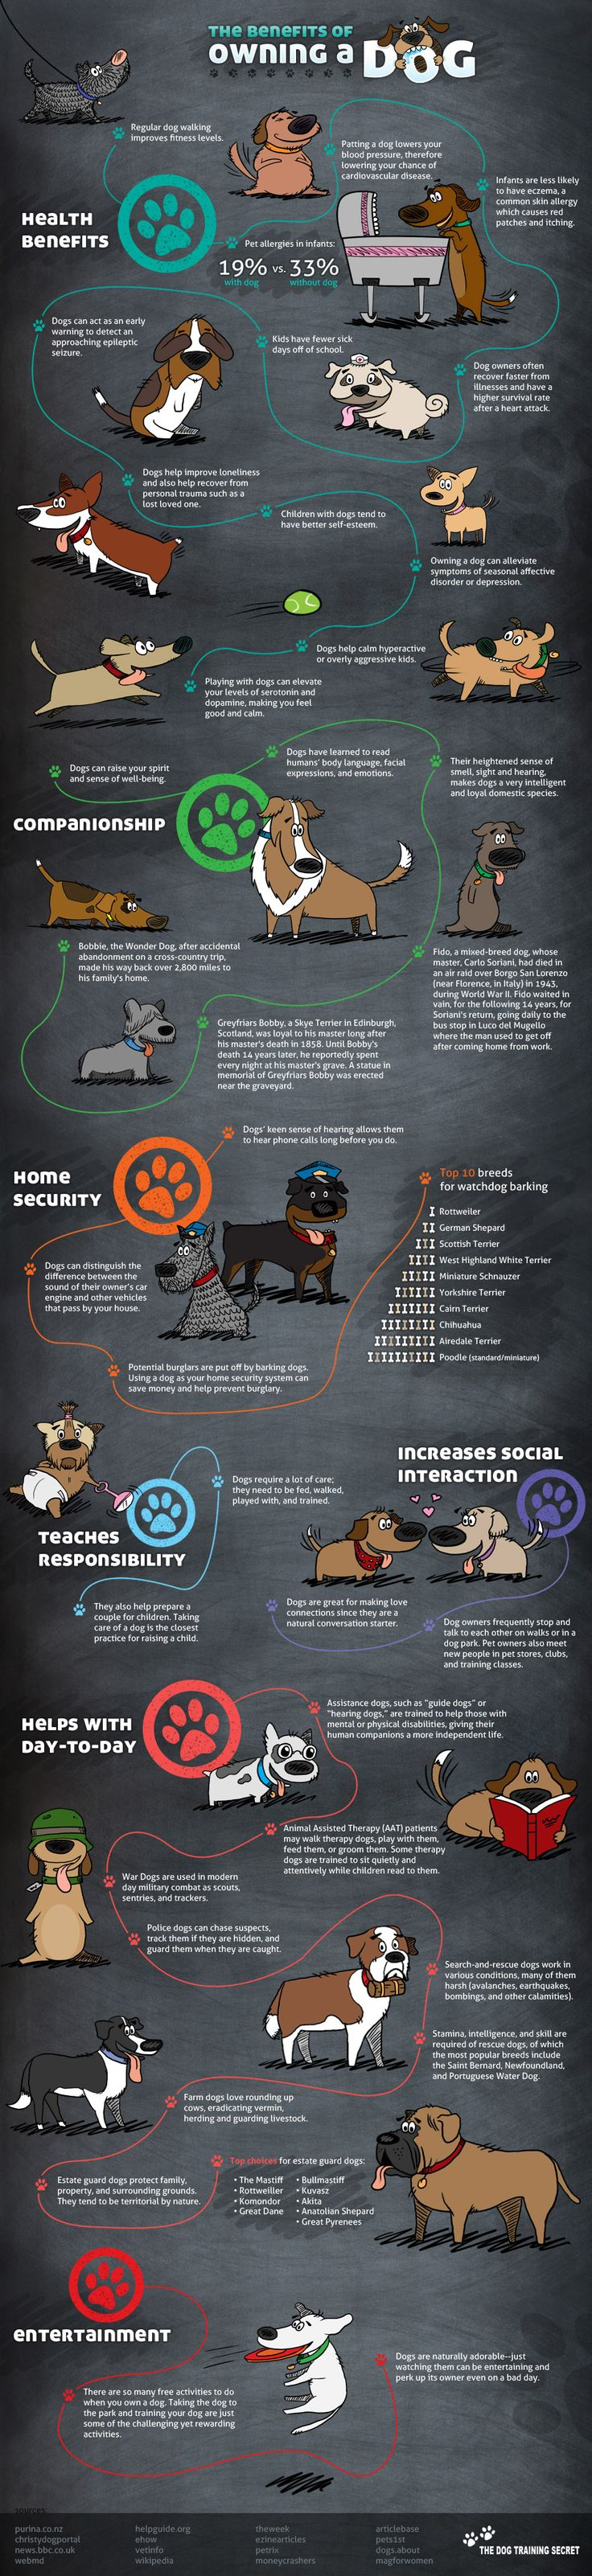 Now, who needs a DOC when you have a DOG? =) Click on image to view high-resolution version: Source: TheDogTrainingSecret.com..